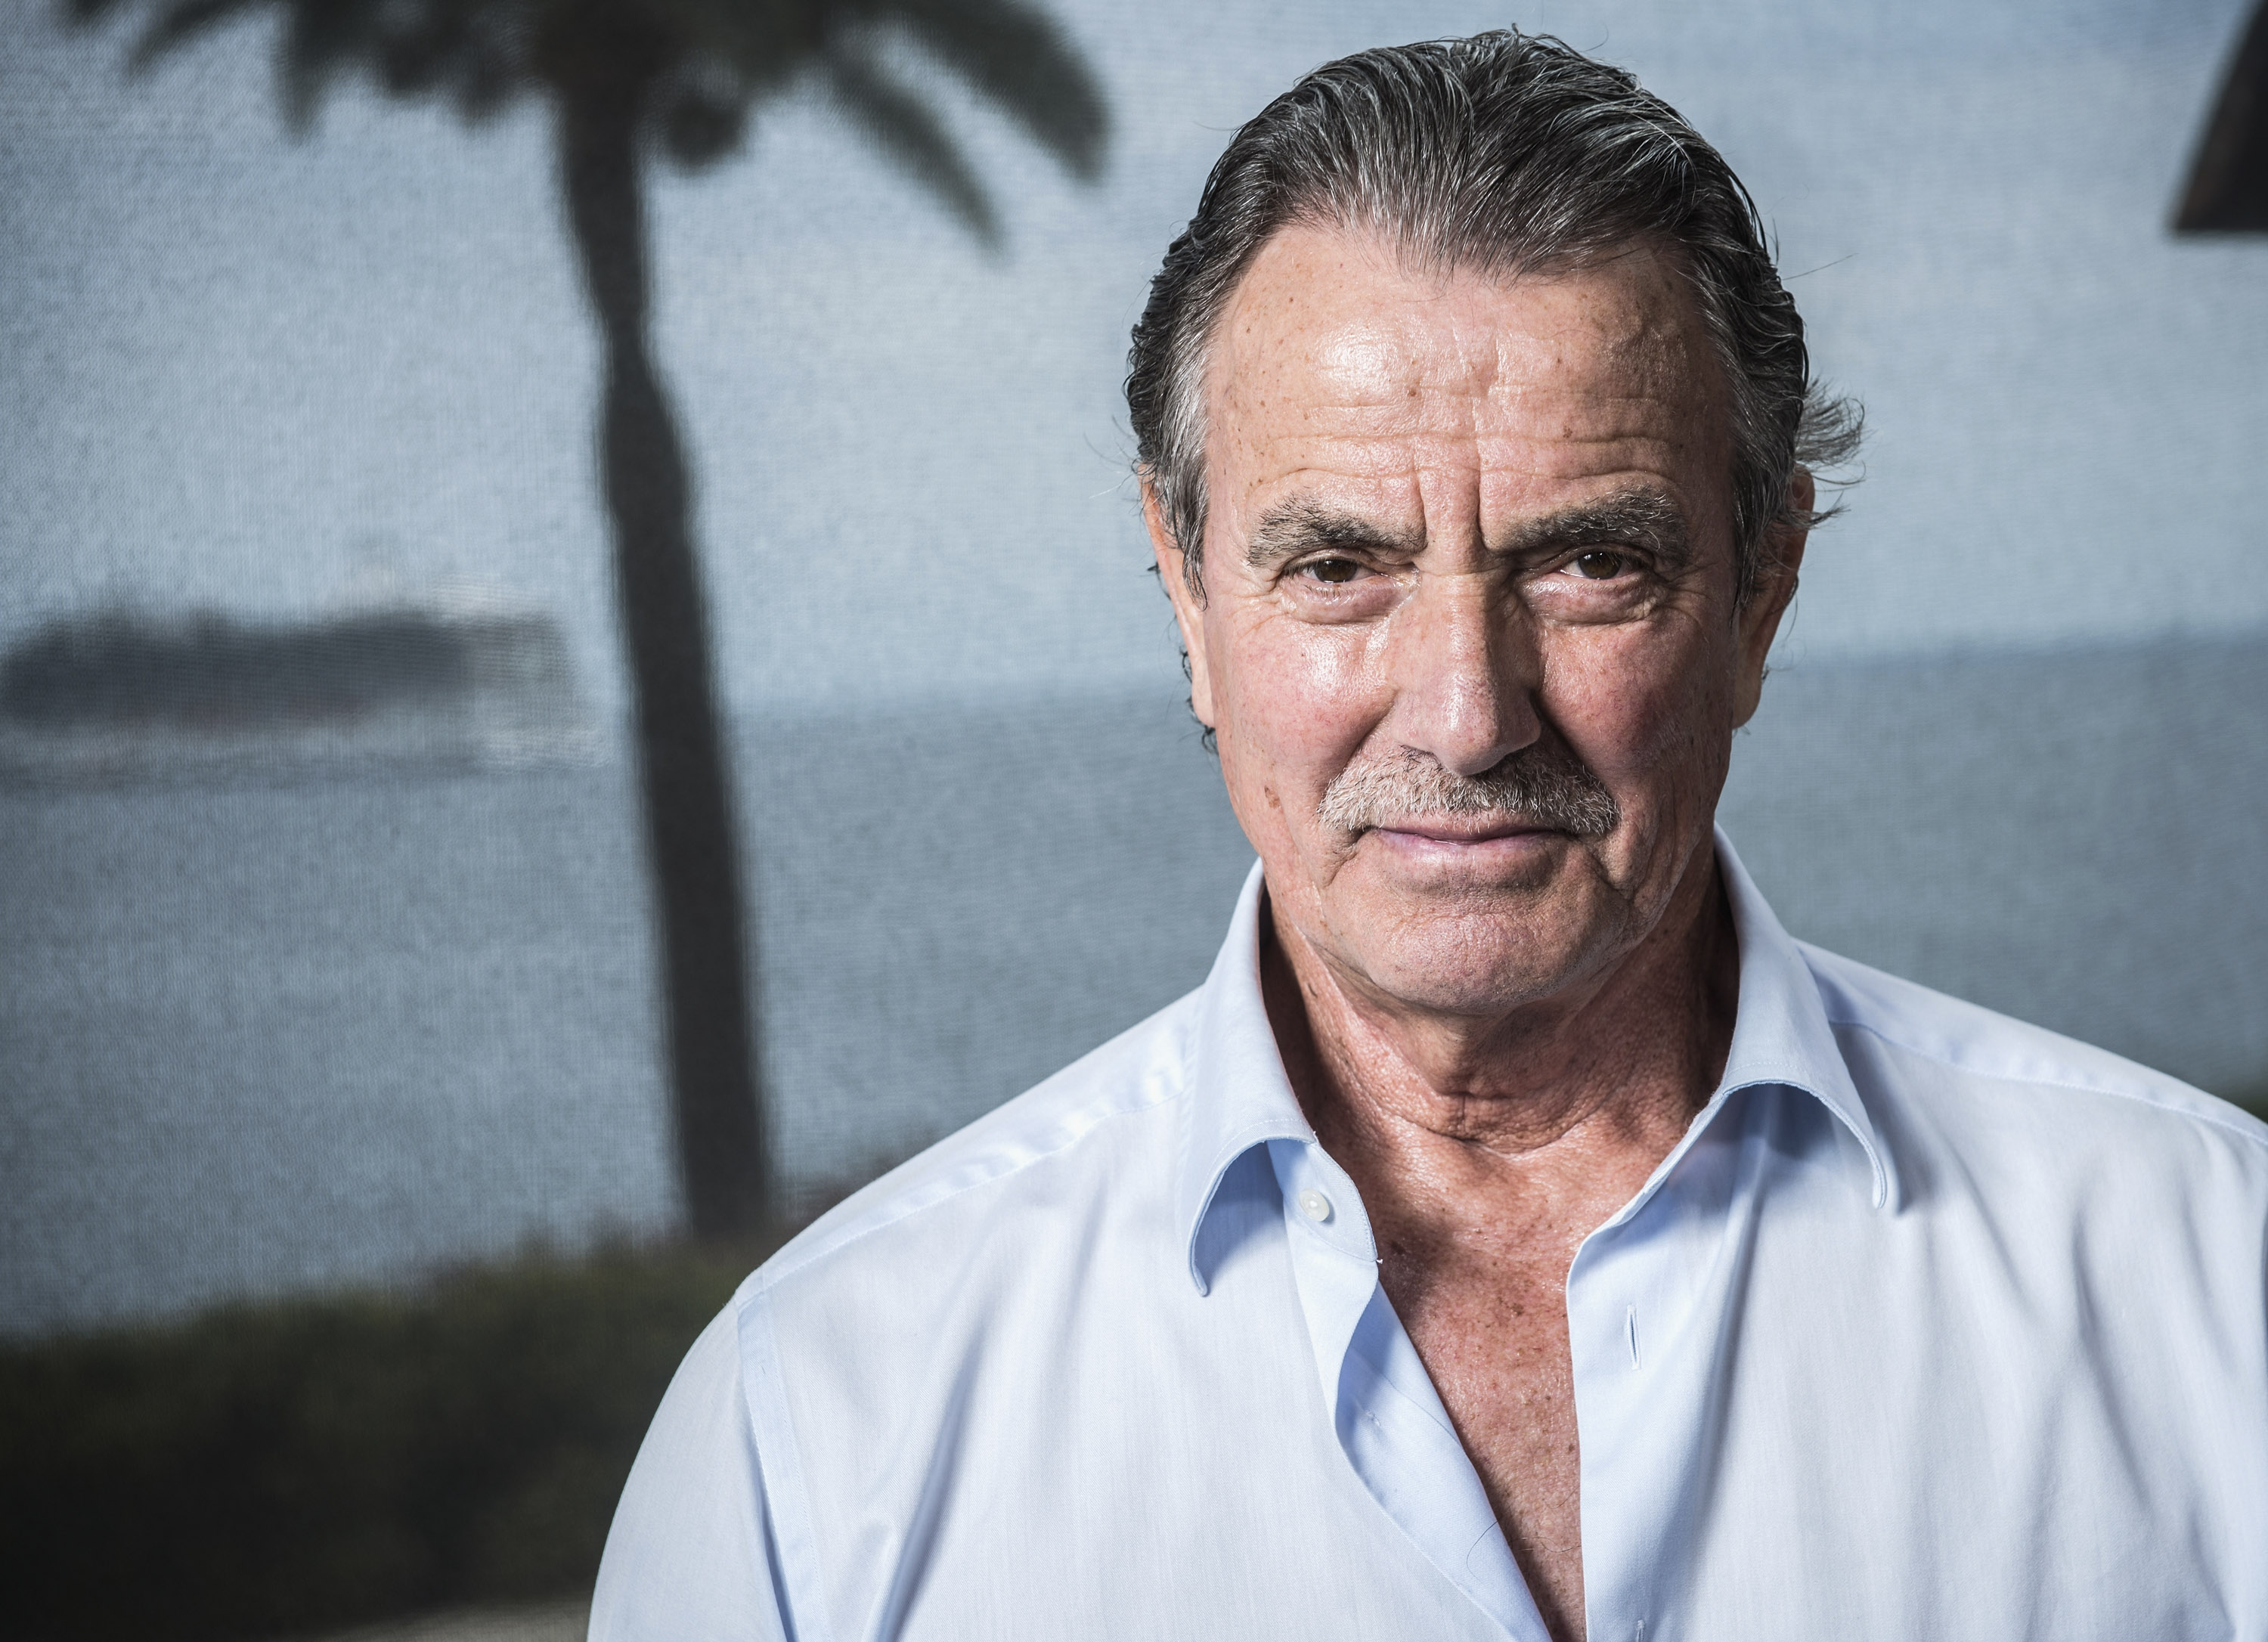 Exclusive Interview: Eric Braeden on Y&R, His Tough Past, and His New Memoir I'll Be Damned